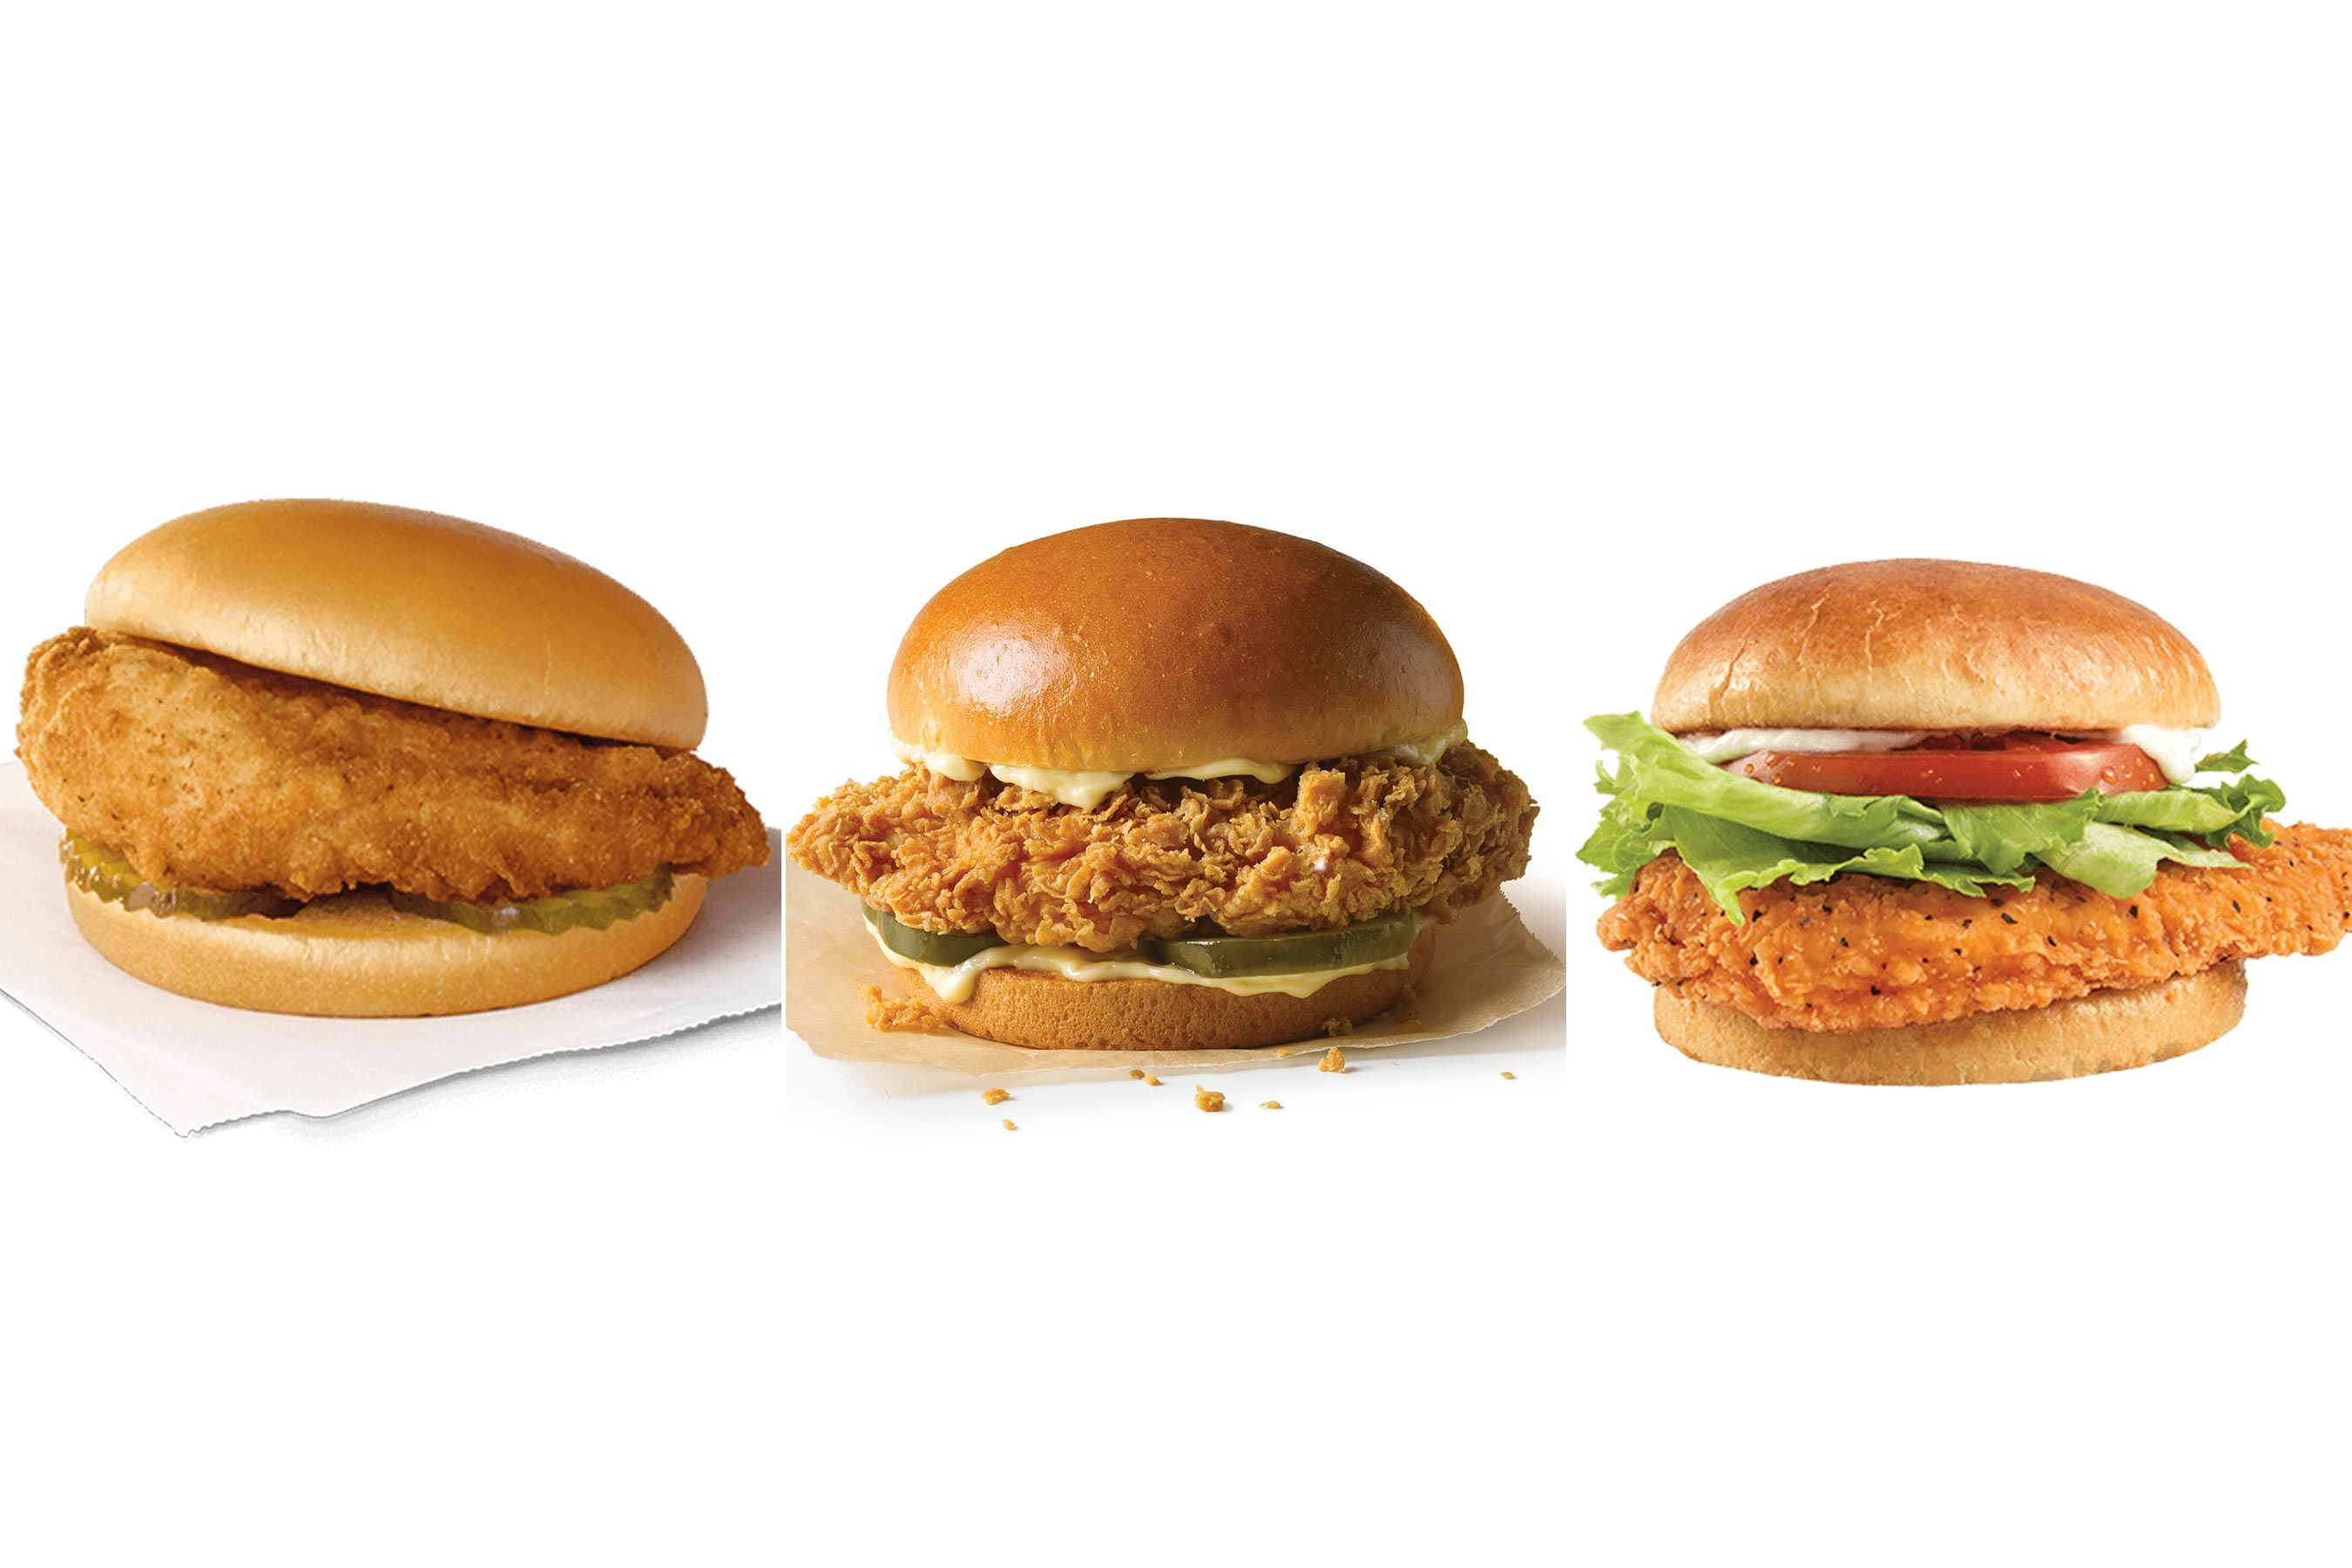 Popeyes Hilariously Starts a Feud with Chick-fil-A Over the Best Chicken Sandwich & Wendy's Joins in